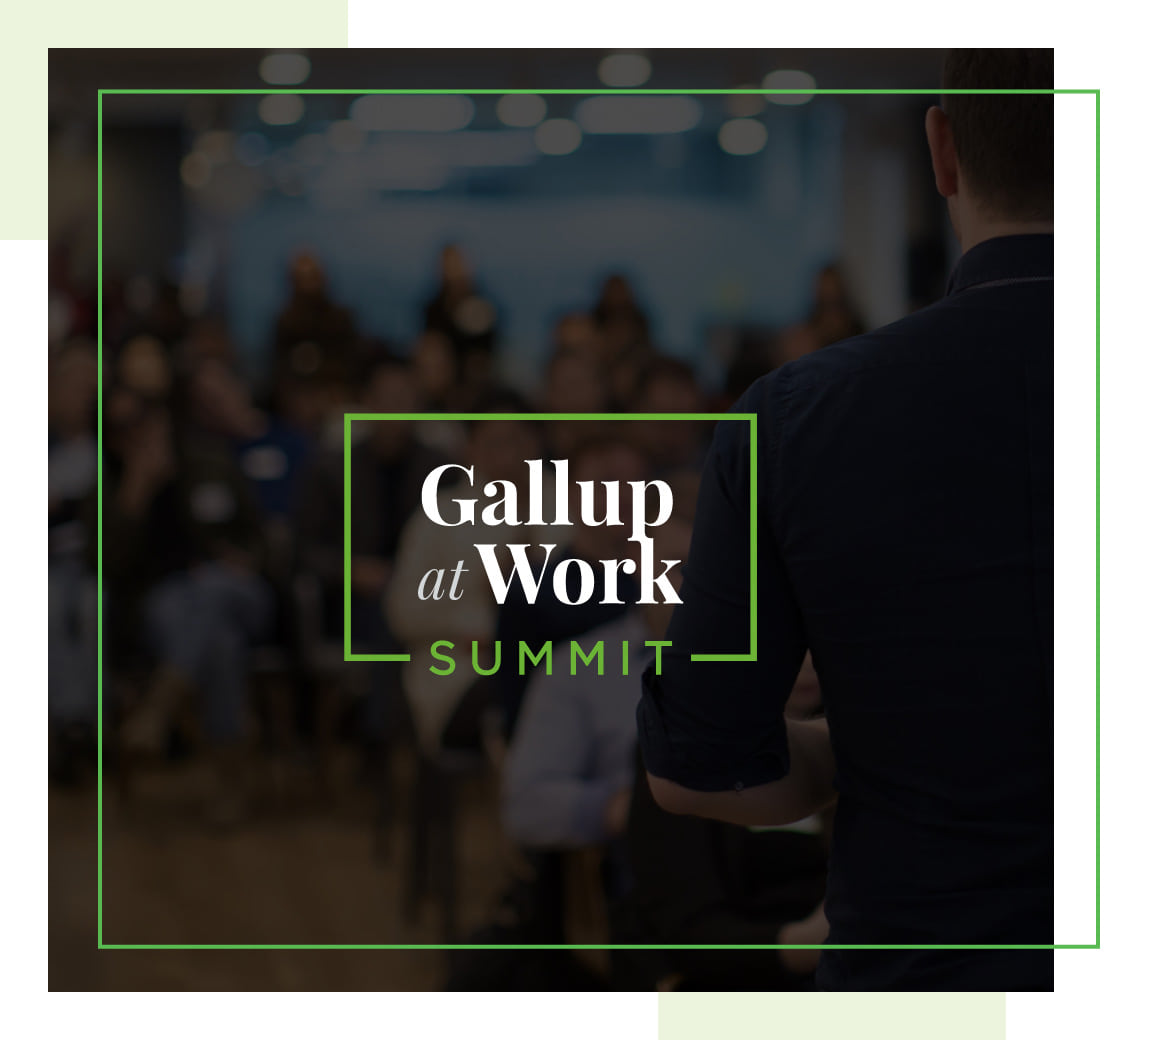 A woman on stage at the Gallup at Work Summit and two pictures of people enjoying the Summit.